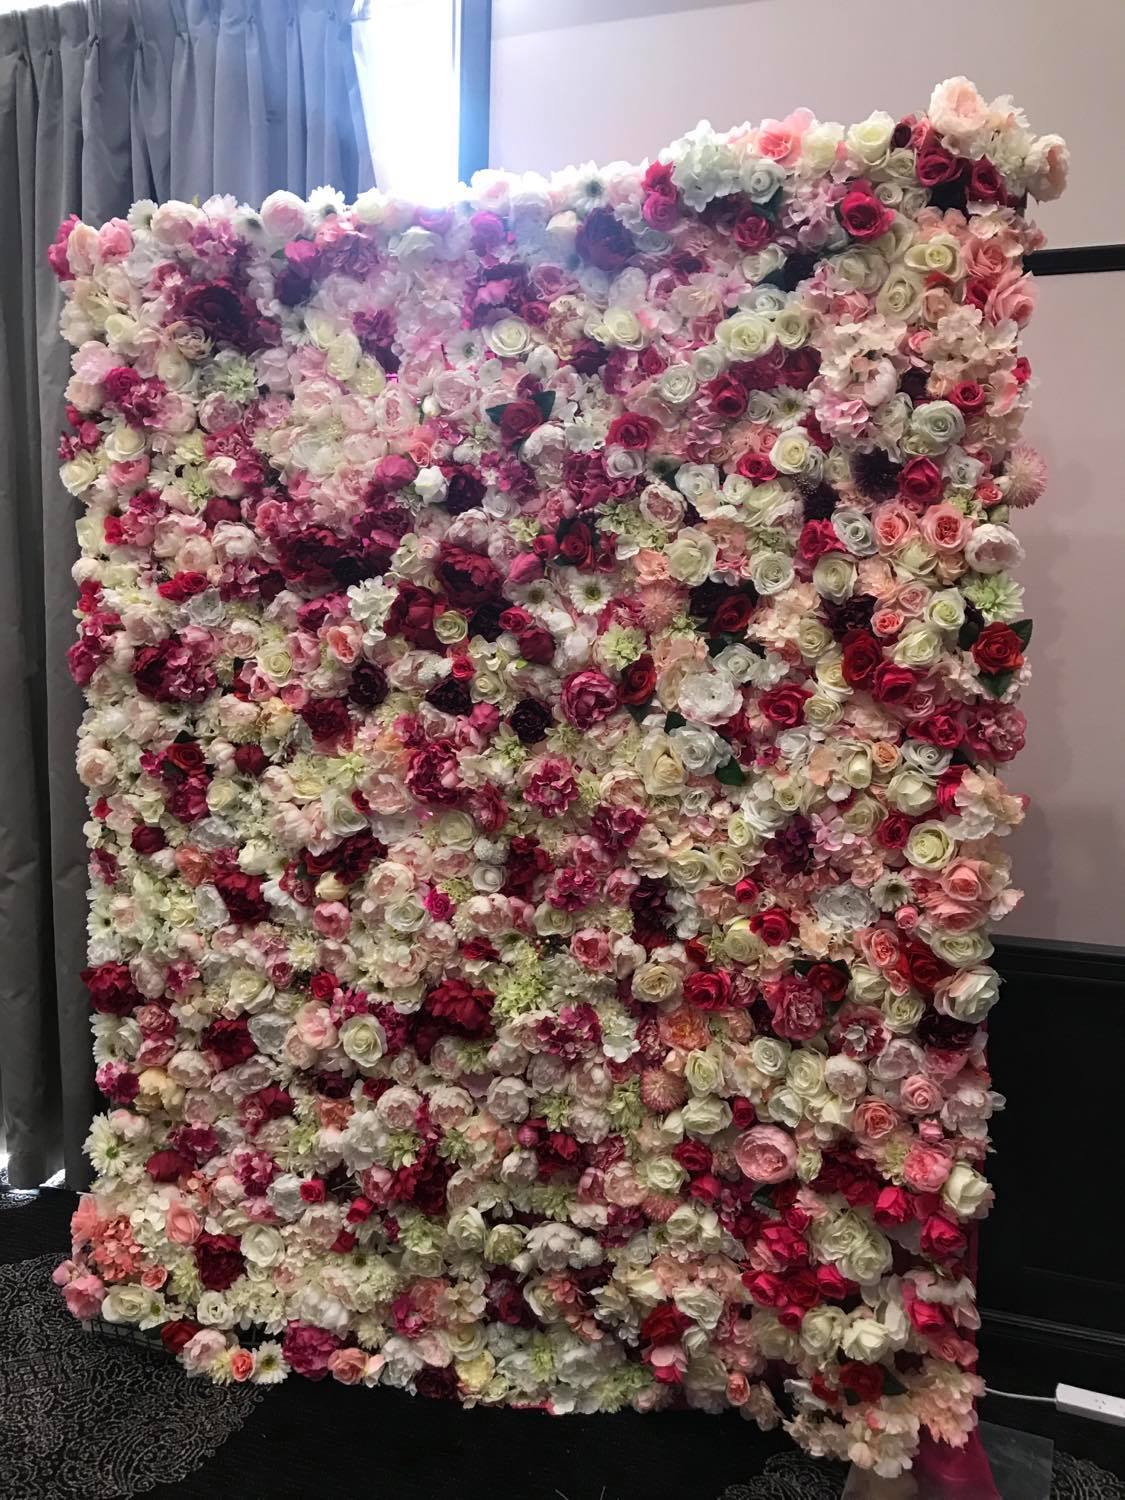 Backdrops for Weddings Hire Contemporary Cakes and classes